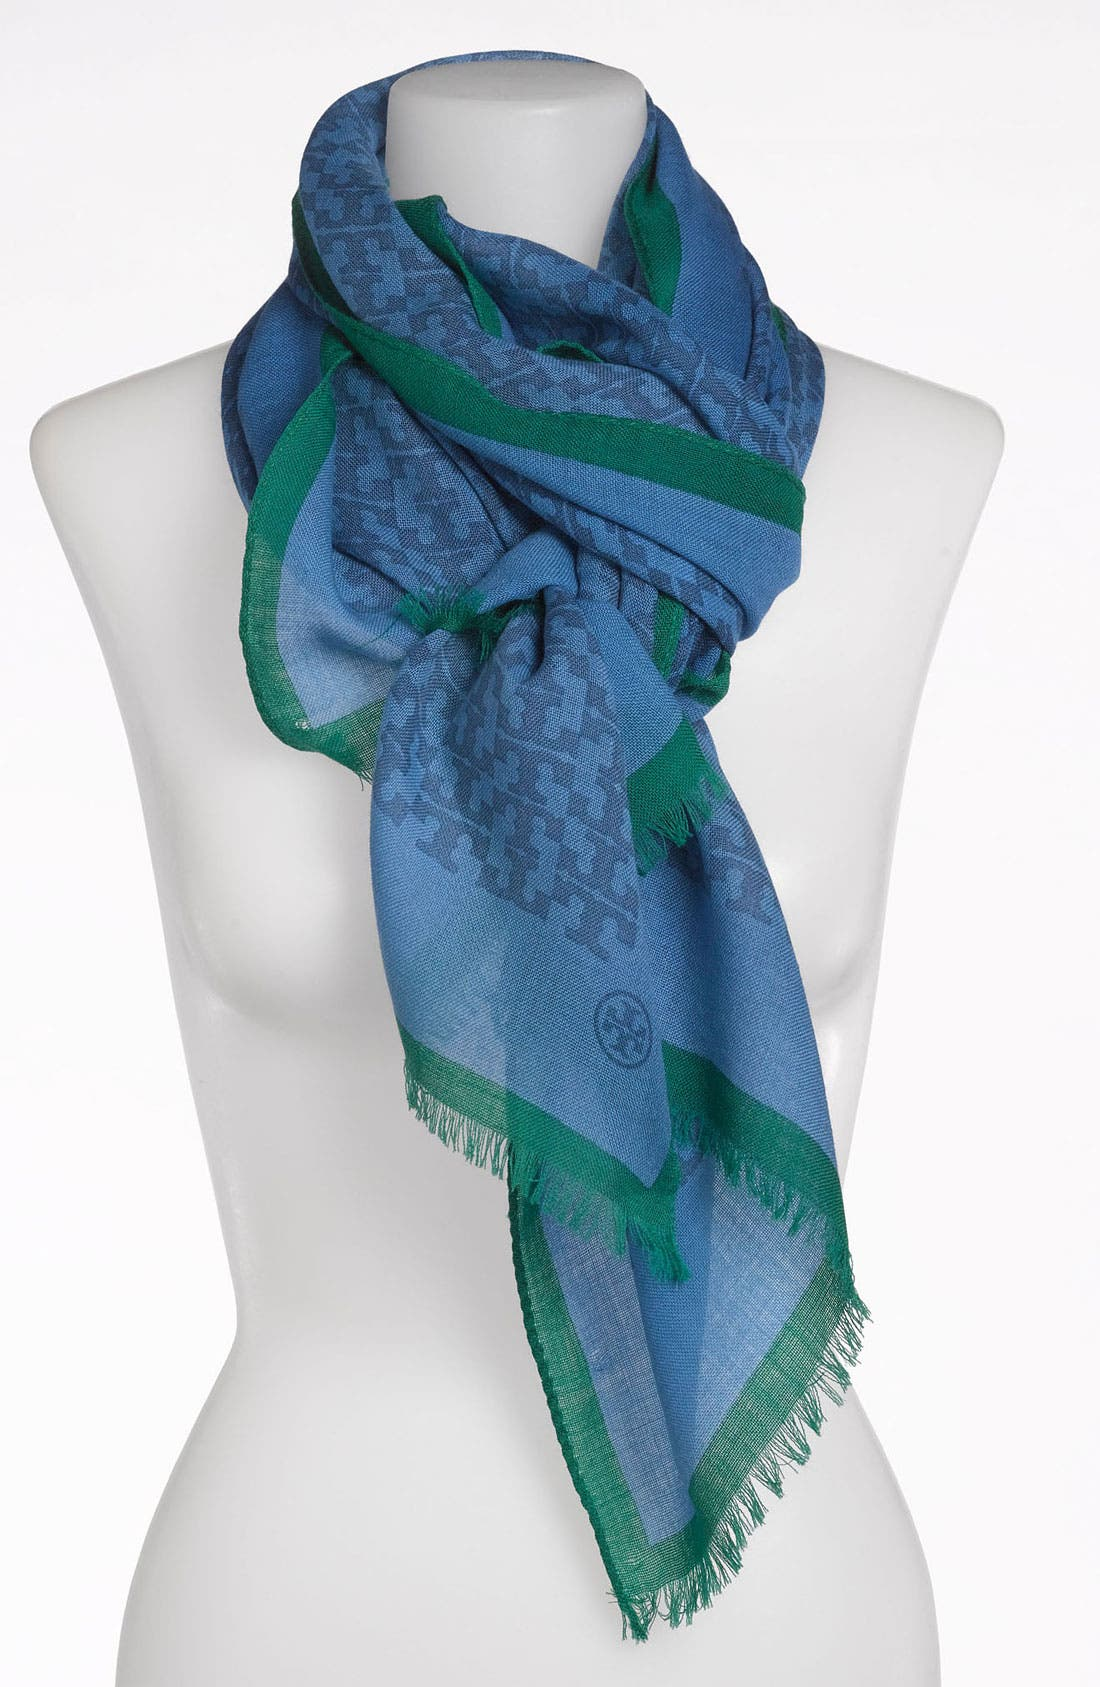 Alternate Image 1 Selected - Tory Burch 'Allover T Print' Wool Scarf